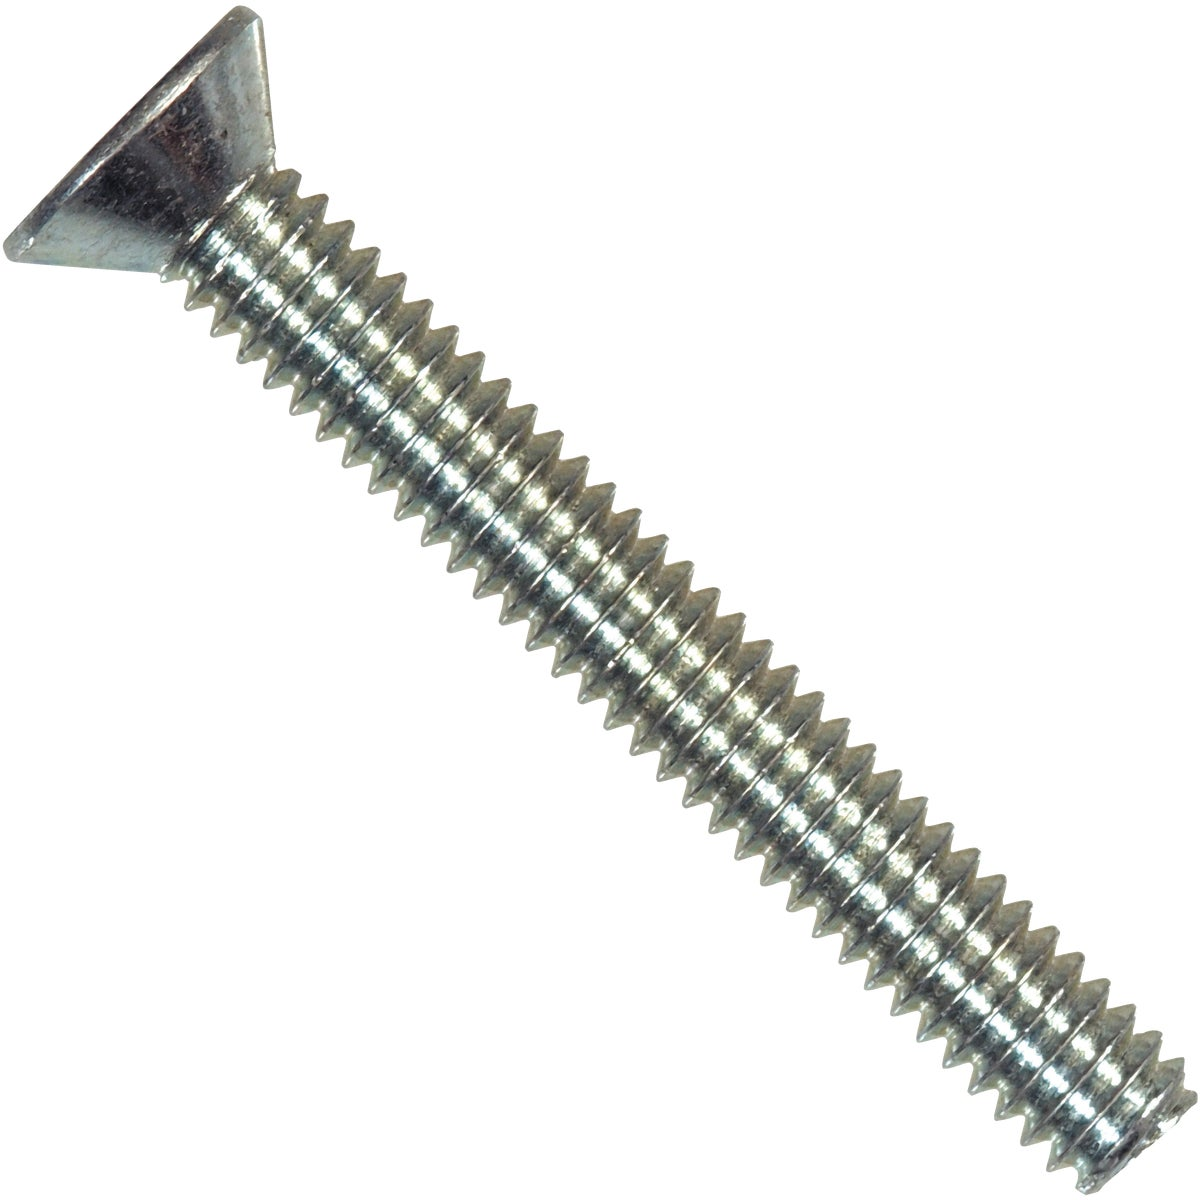 10-24X2 PH FH MACH SCREW - 101083 by Hillman Fastener